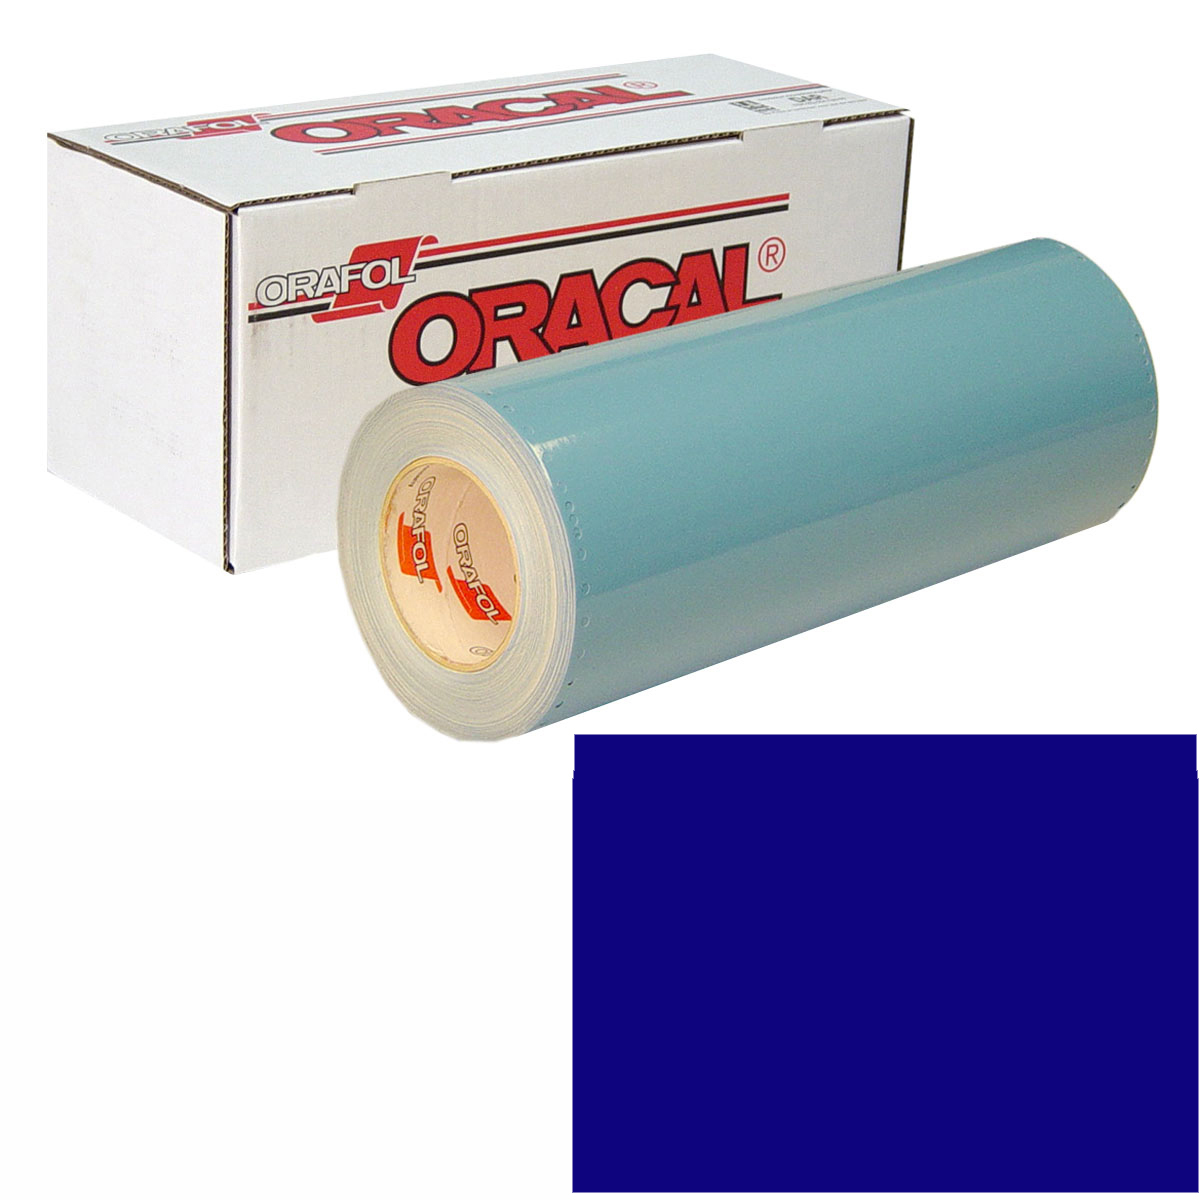 ORACAL 751 Unp 24in X 50yd 049 King Blue